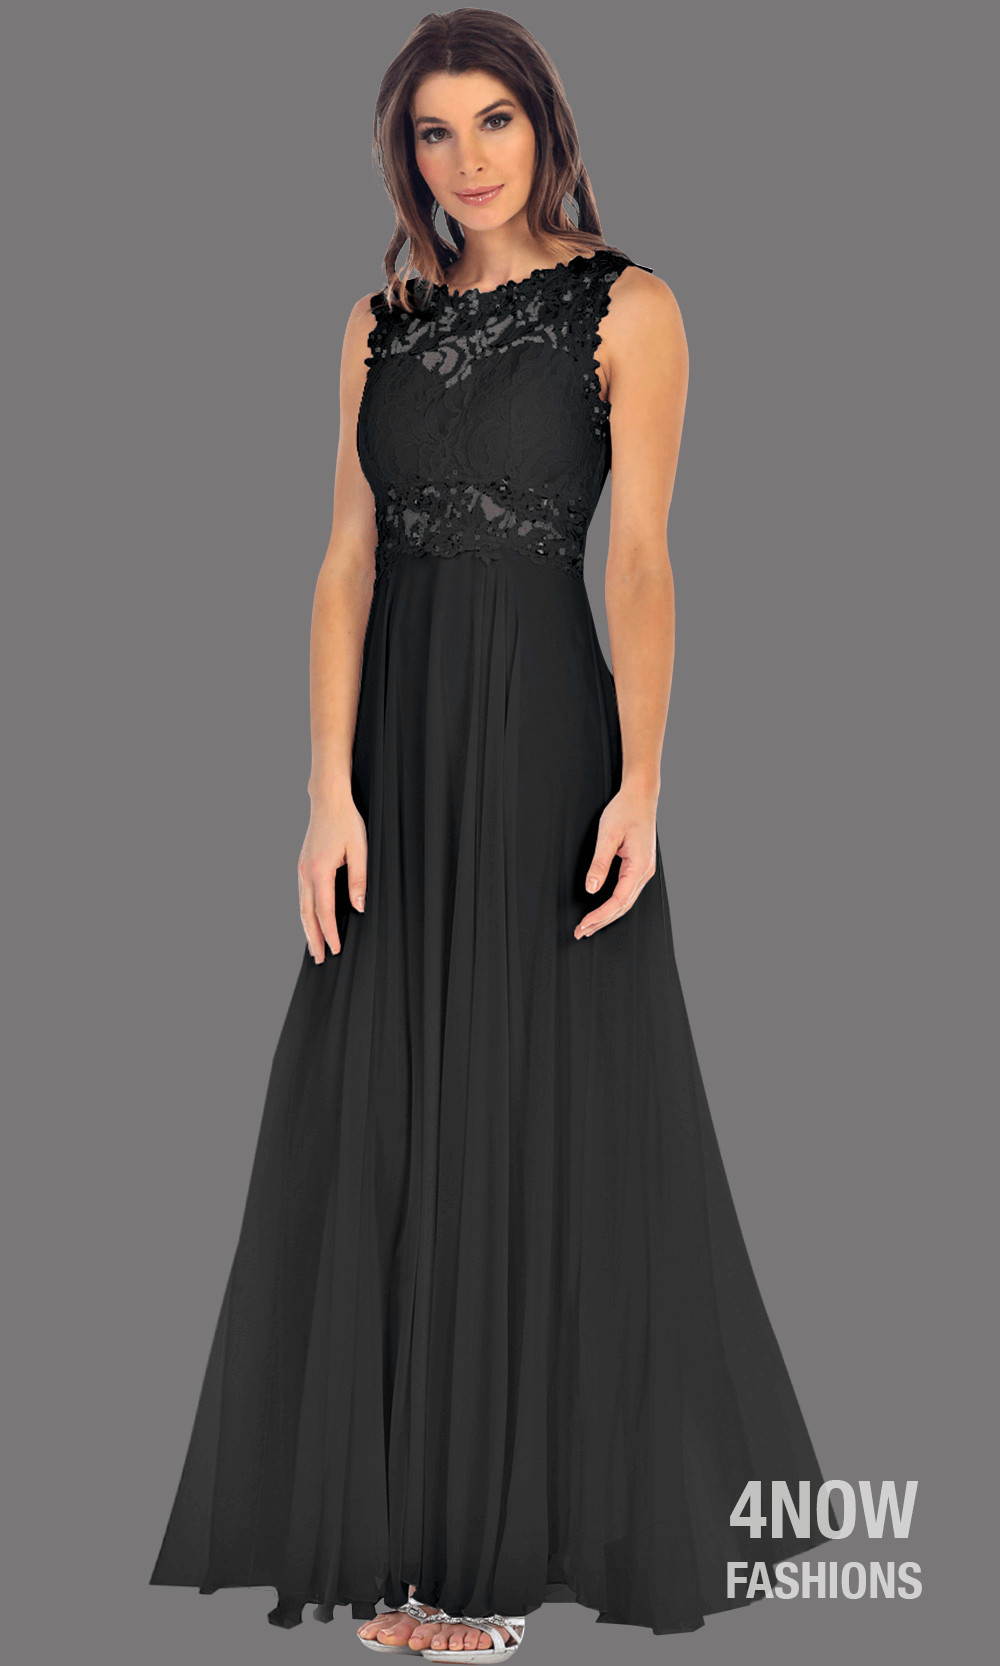 Long Black High Neck Dress with Chiffon A-line Skirt